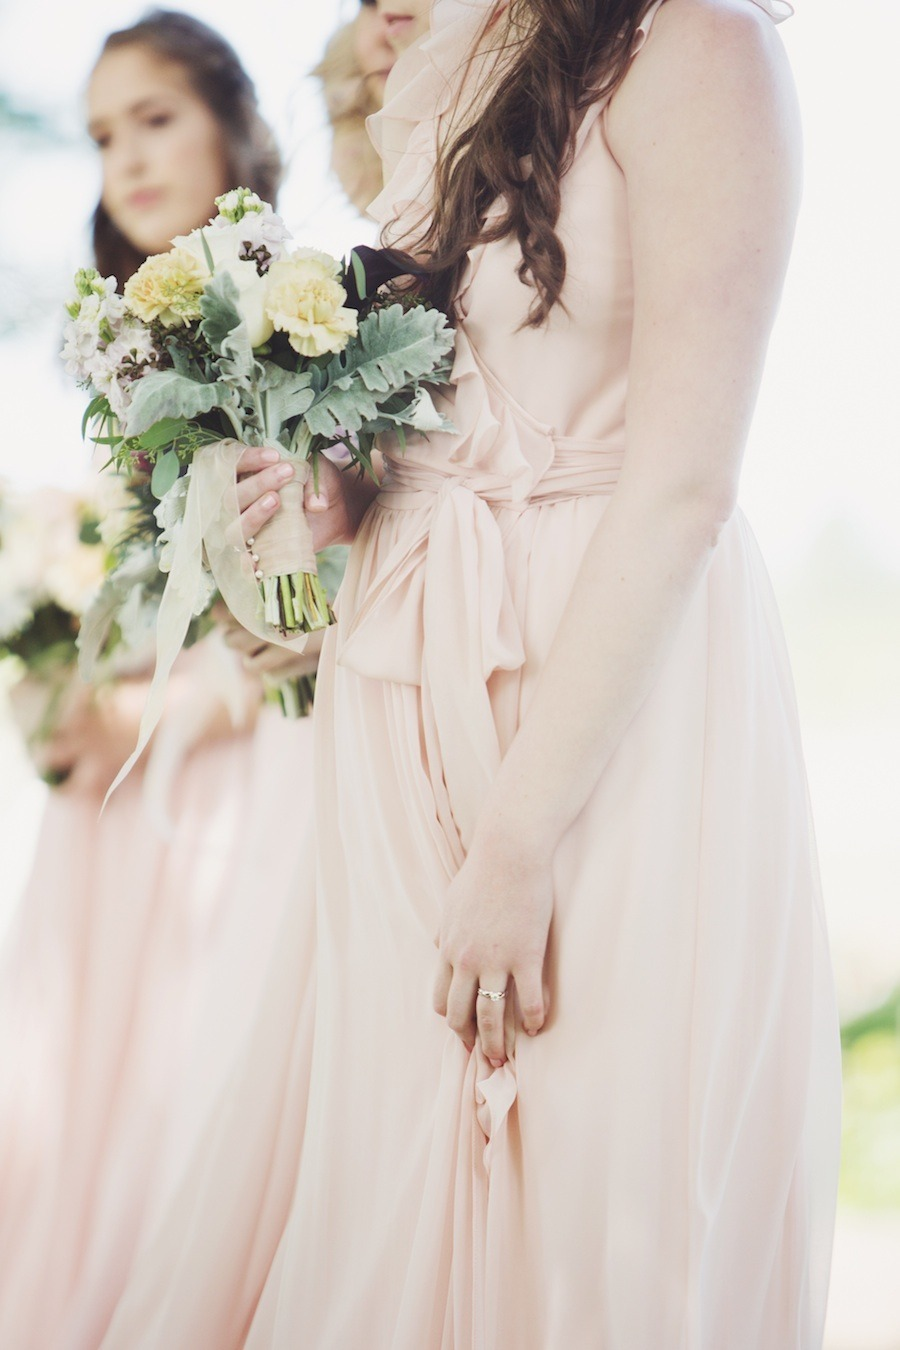 Image by Lucida Photography via Style Me Pretty